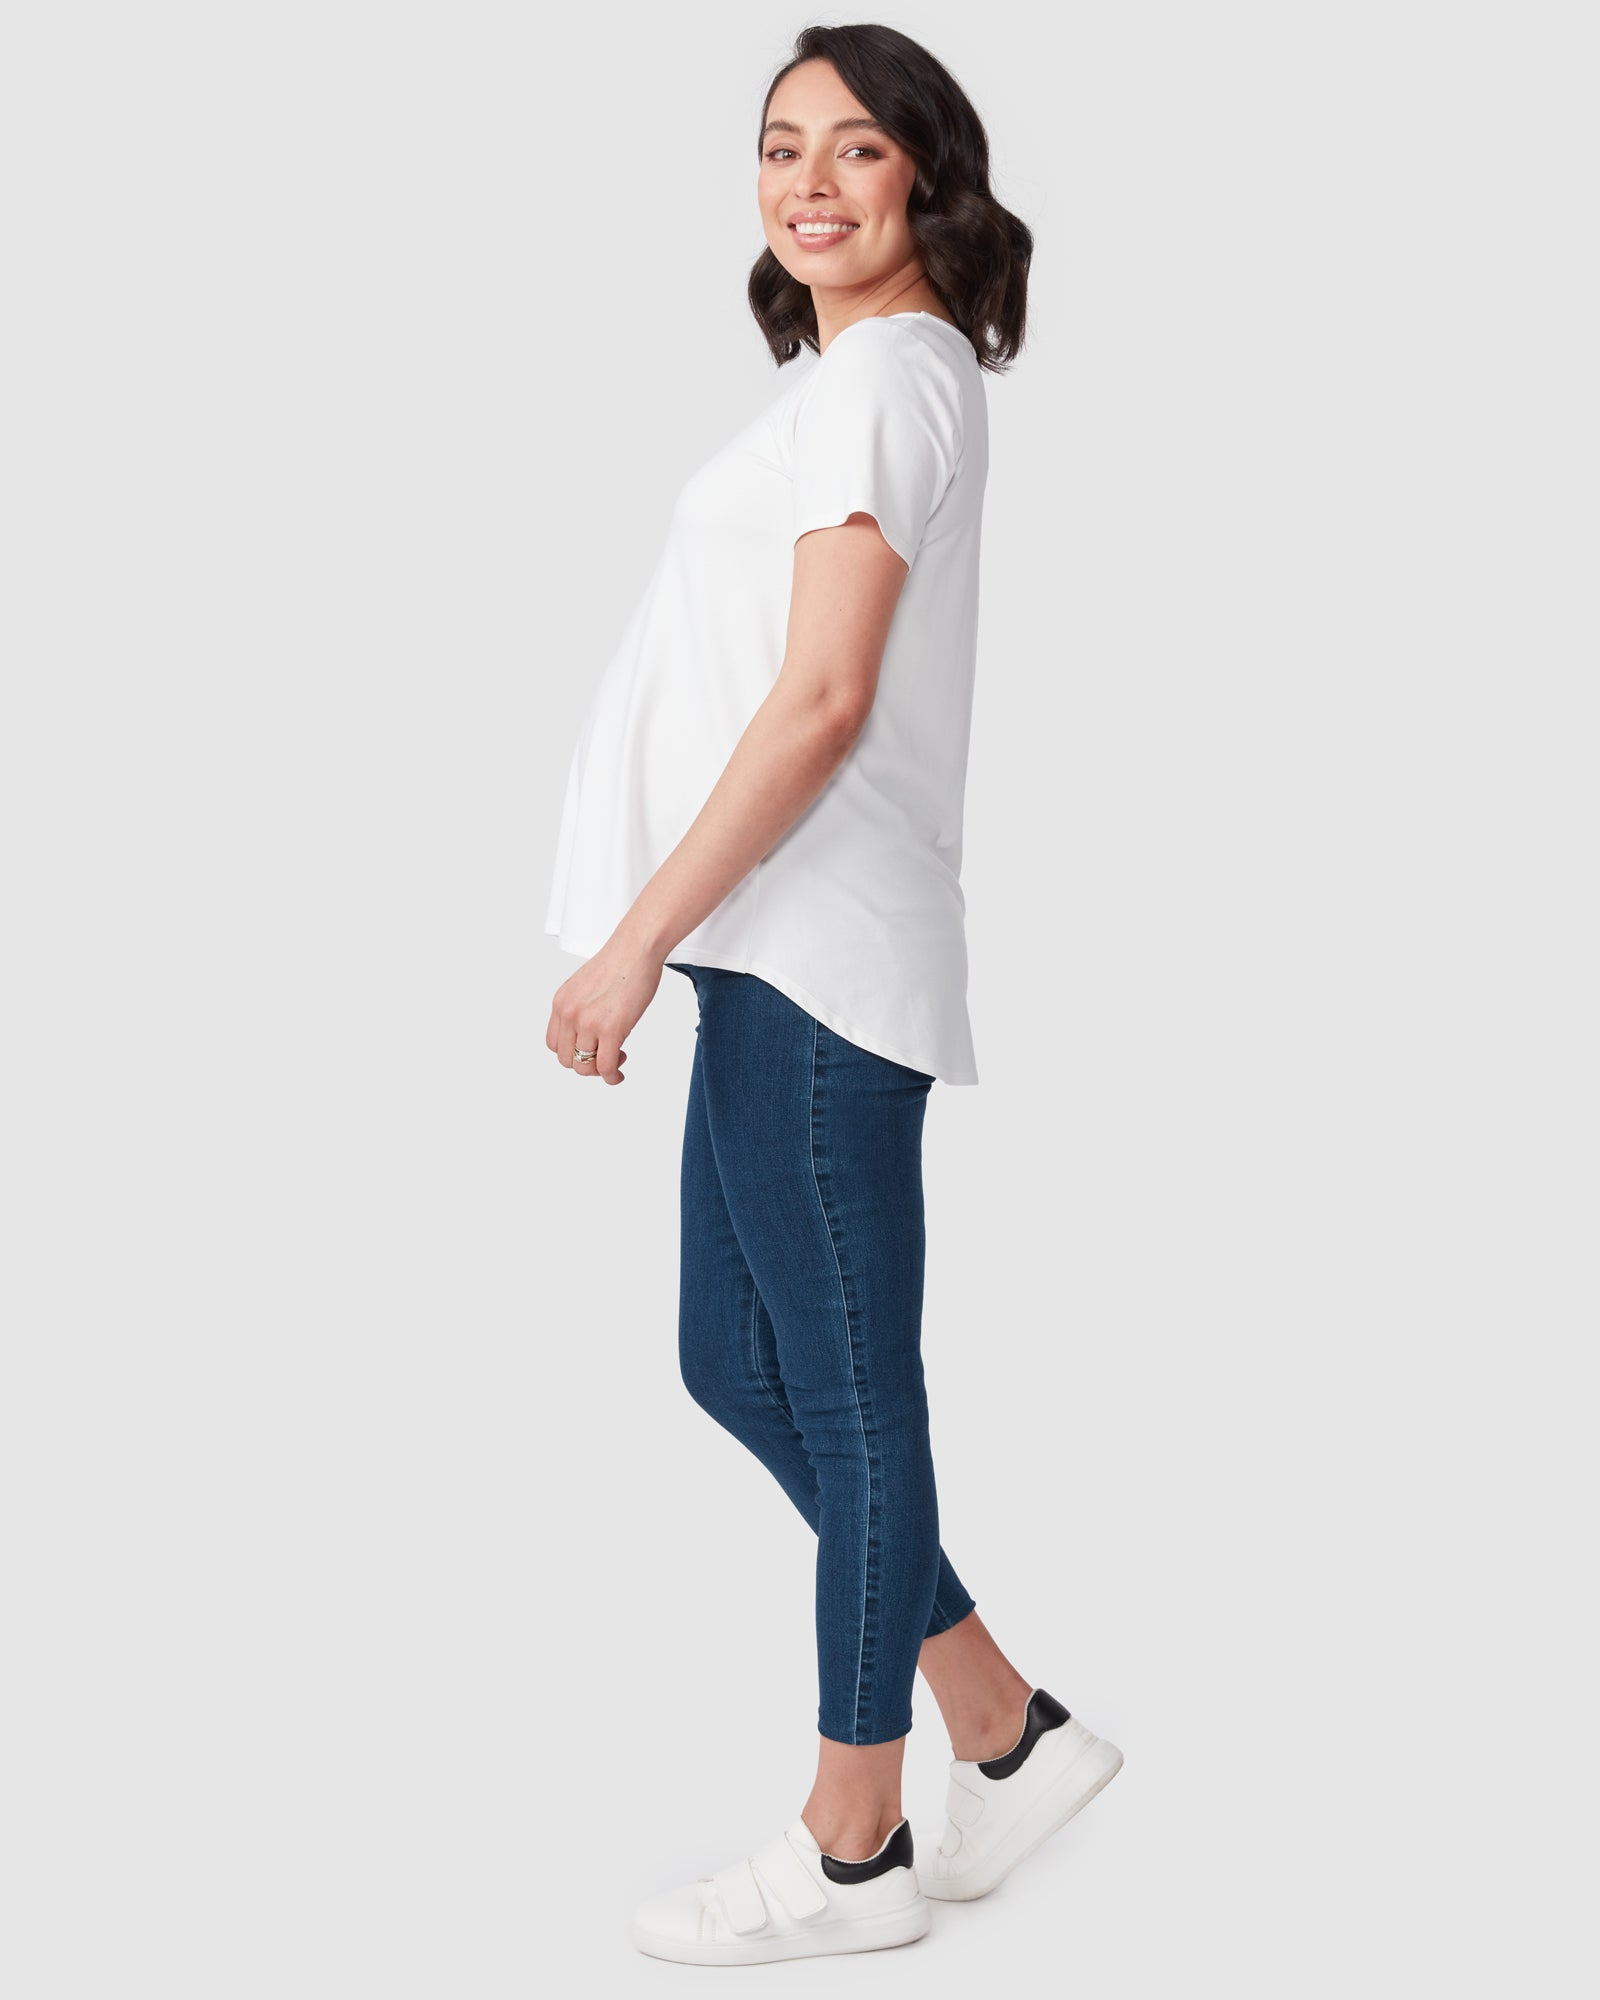 Tegan Underbelly Crop Jeans